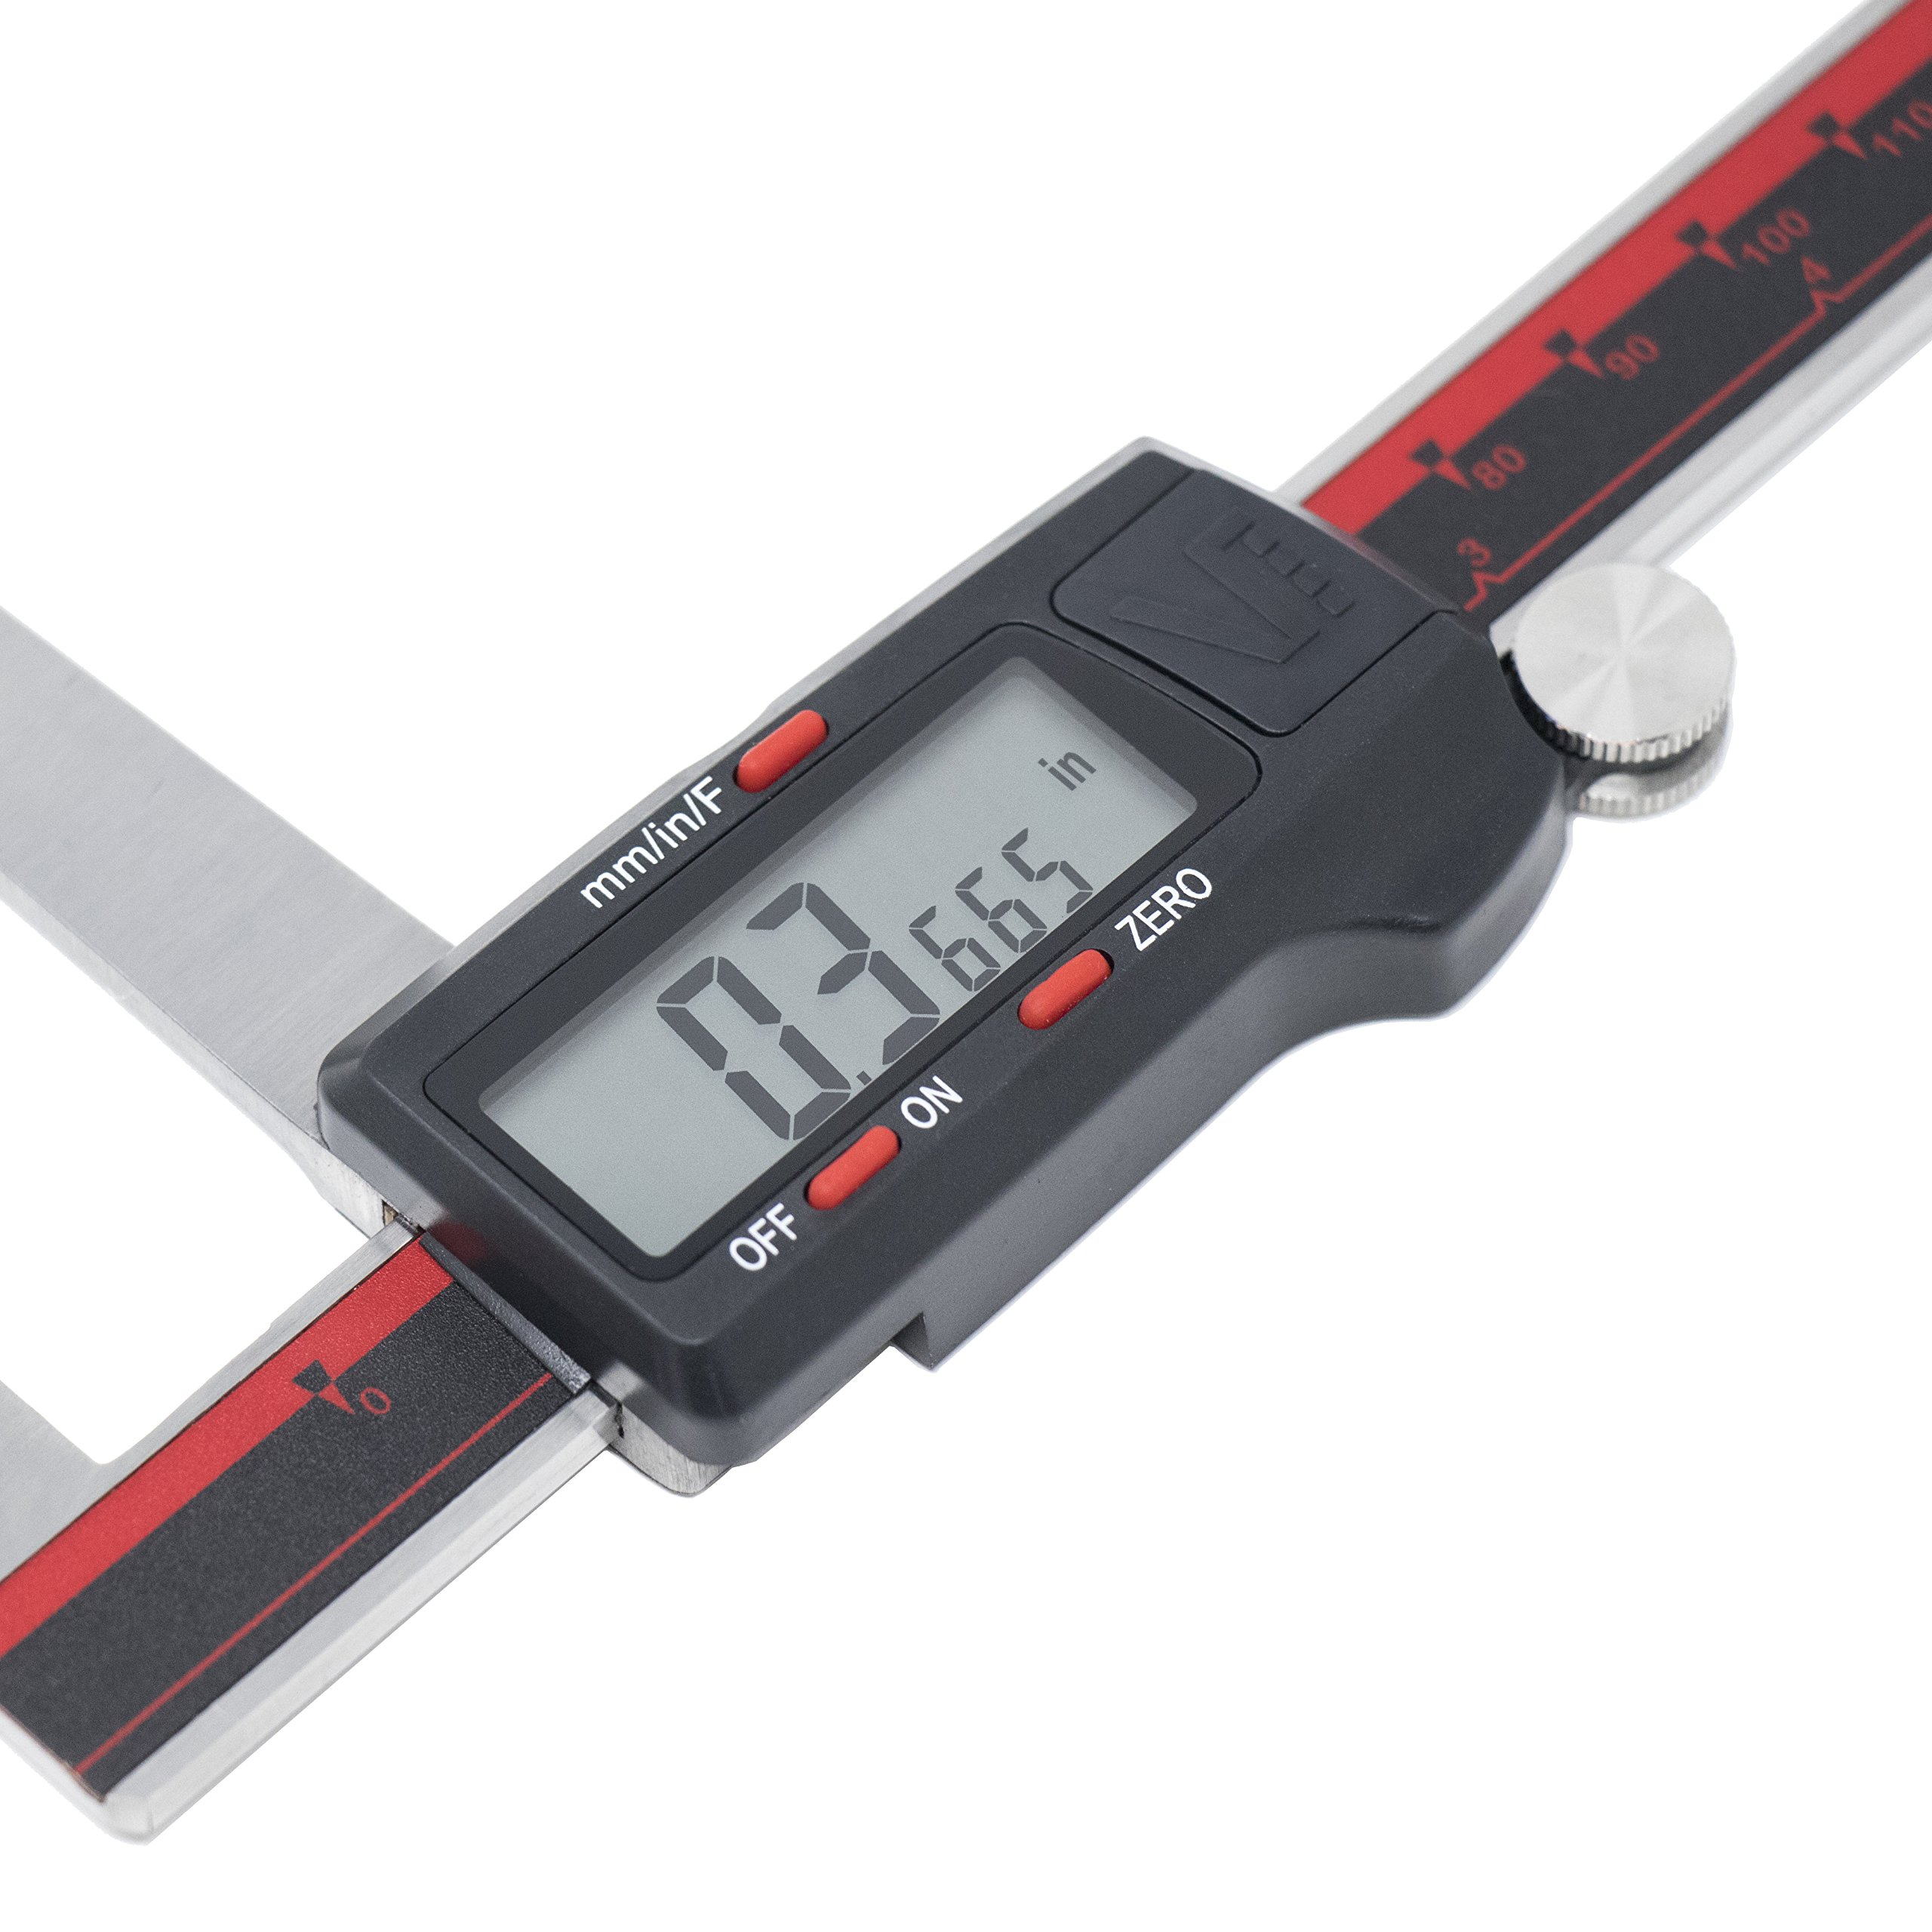 VINCA DRGA-0605 Quality Electronic Digital Break Rotor Gauge inch/Metric/Fractions Conversion 0-6 Inch/150 mm Stainless Steel Body Red/Black Extra Large LCD Screen Auto Off Featured Measuring Tool by VINCA (Image #3)